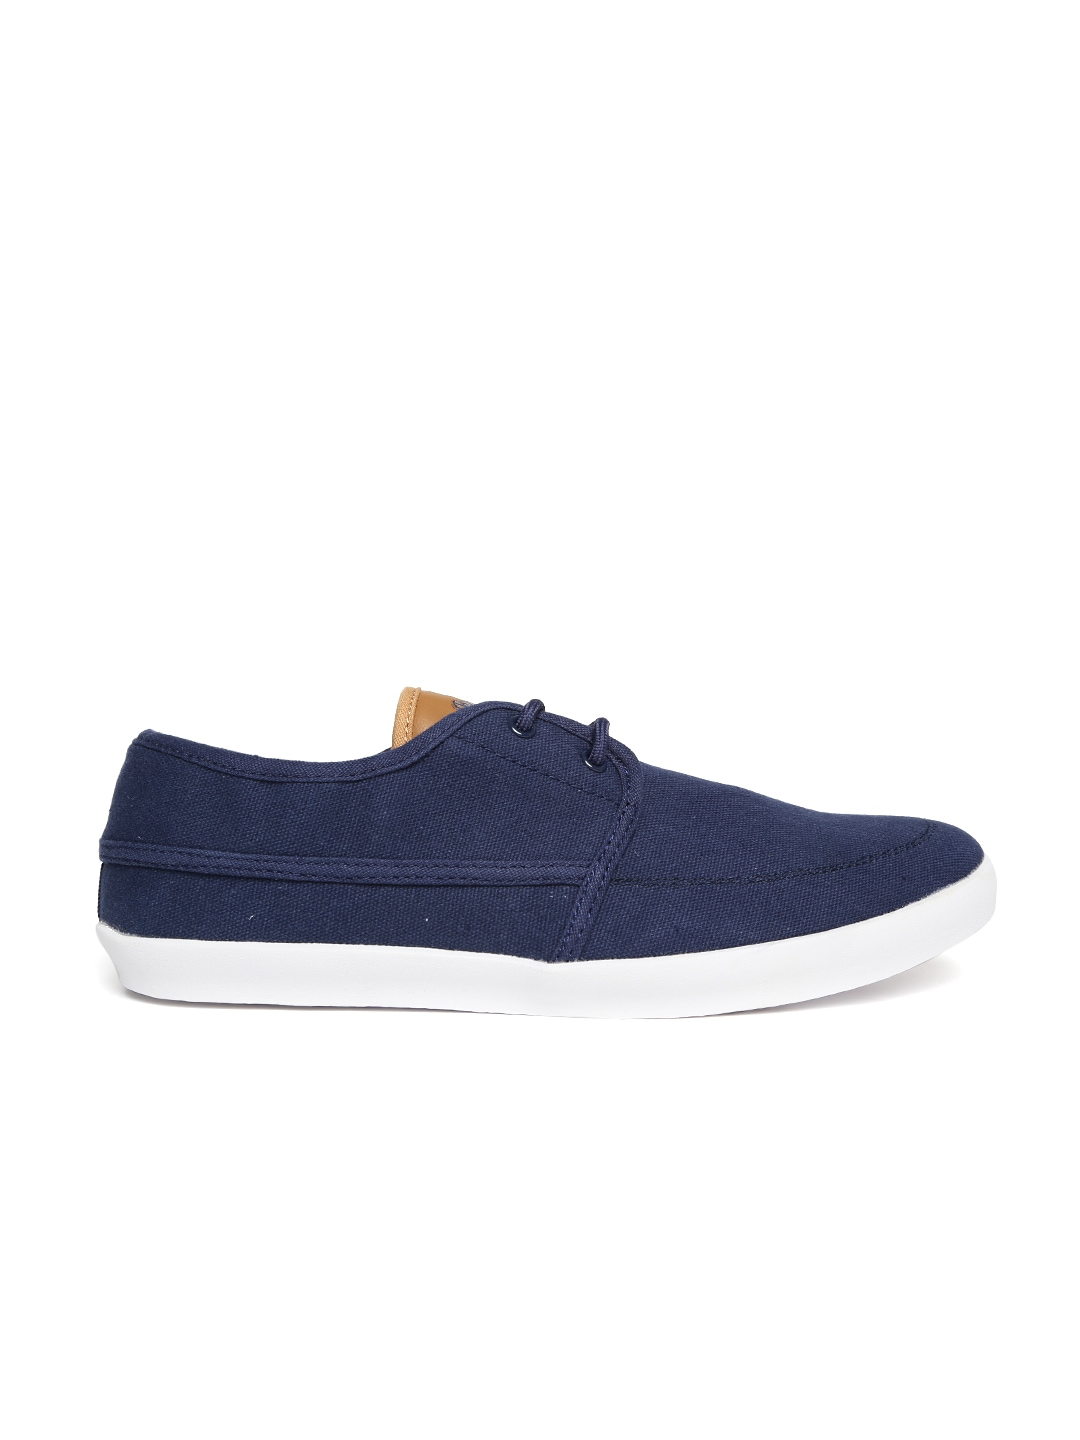 myntra roadster navy canvas shoes 856915 buy myntra